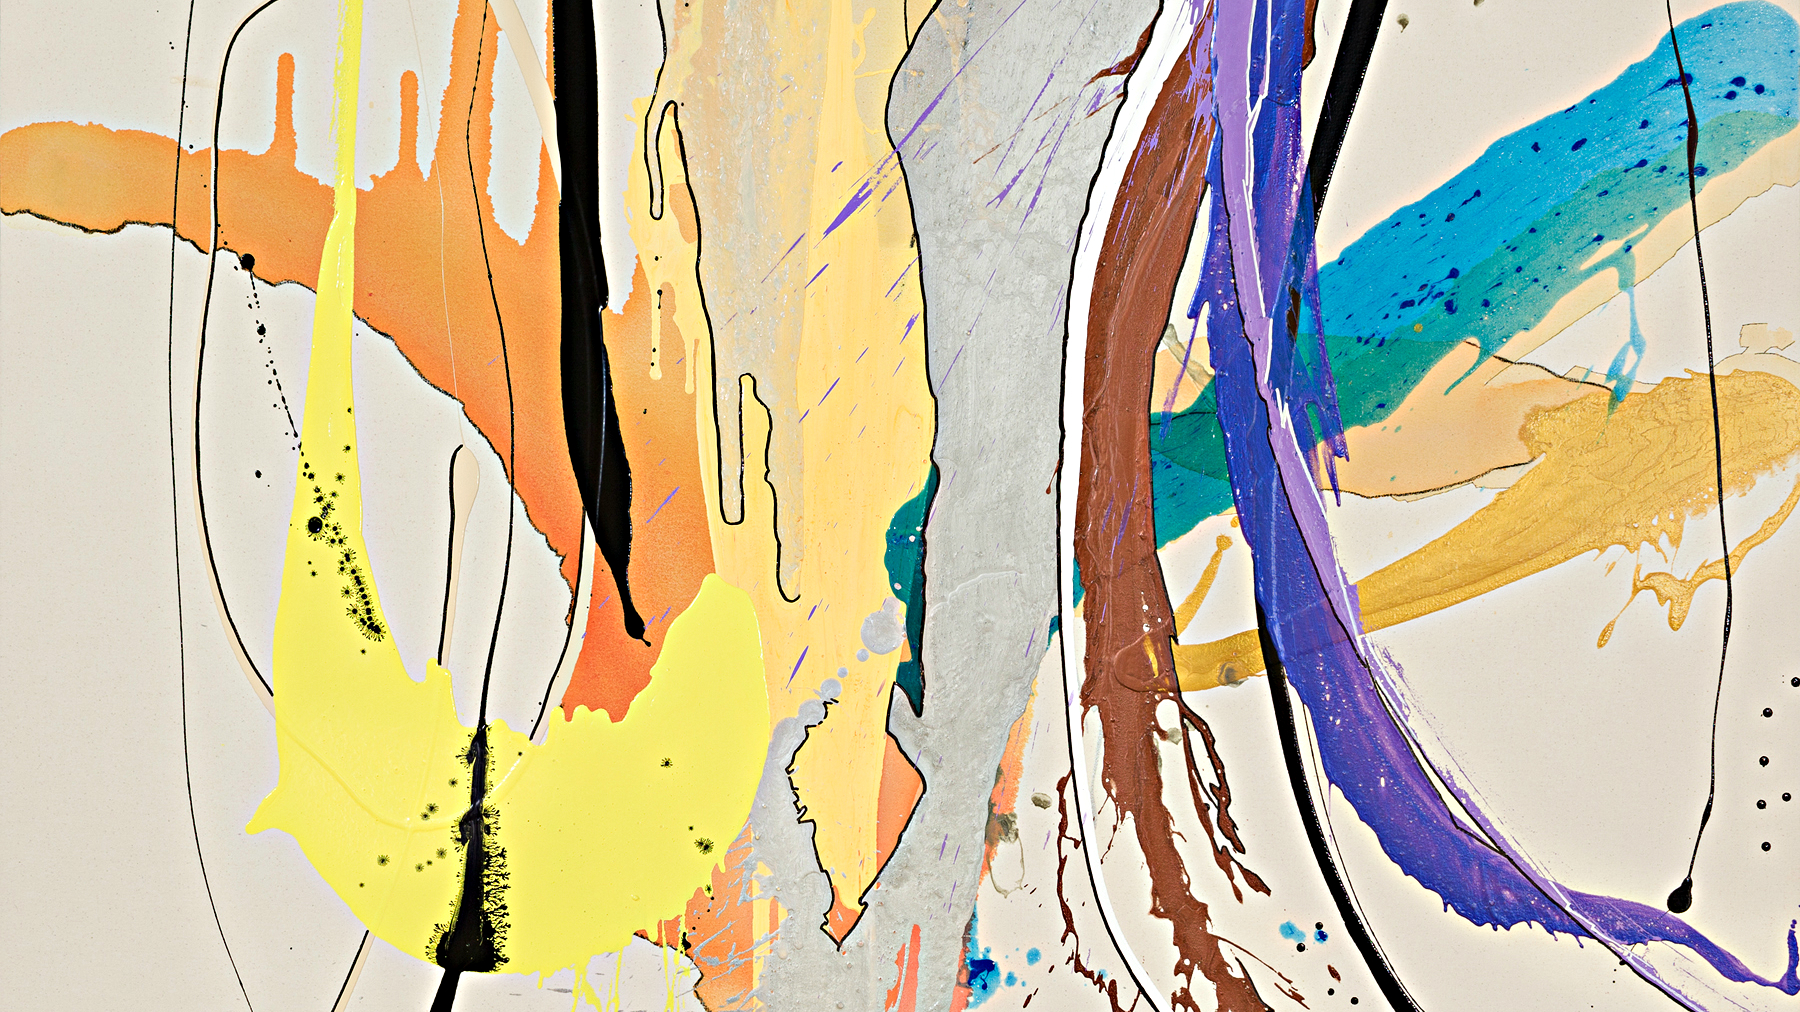 """<p>Laura Krudener, """"Dripping in Gold,"""" 2013, acrylic, enamel, charcoal, and marker on raw canvas.</p>"""